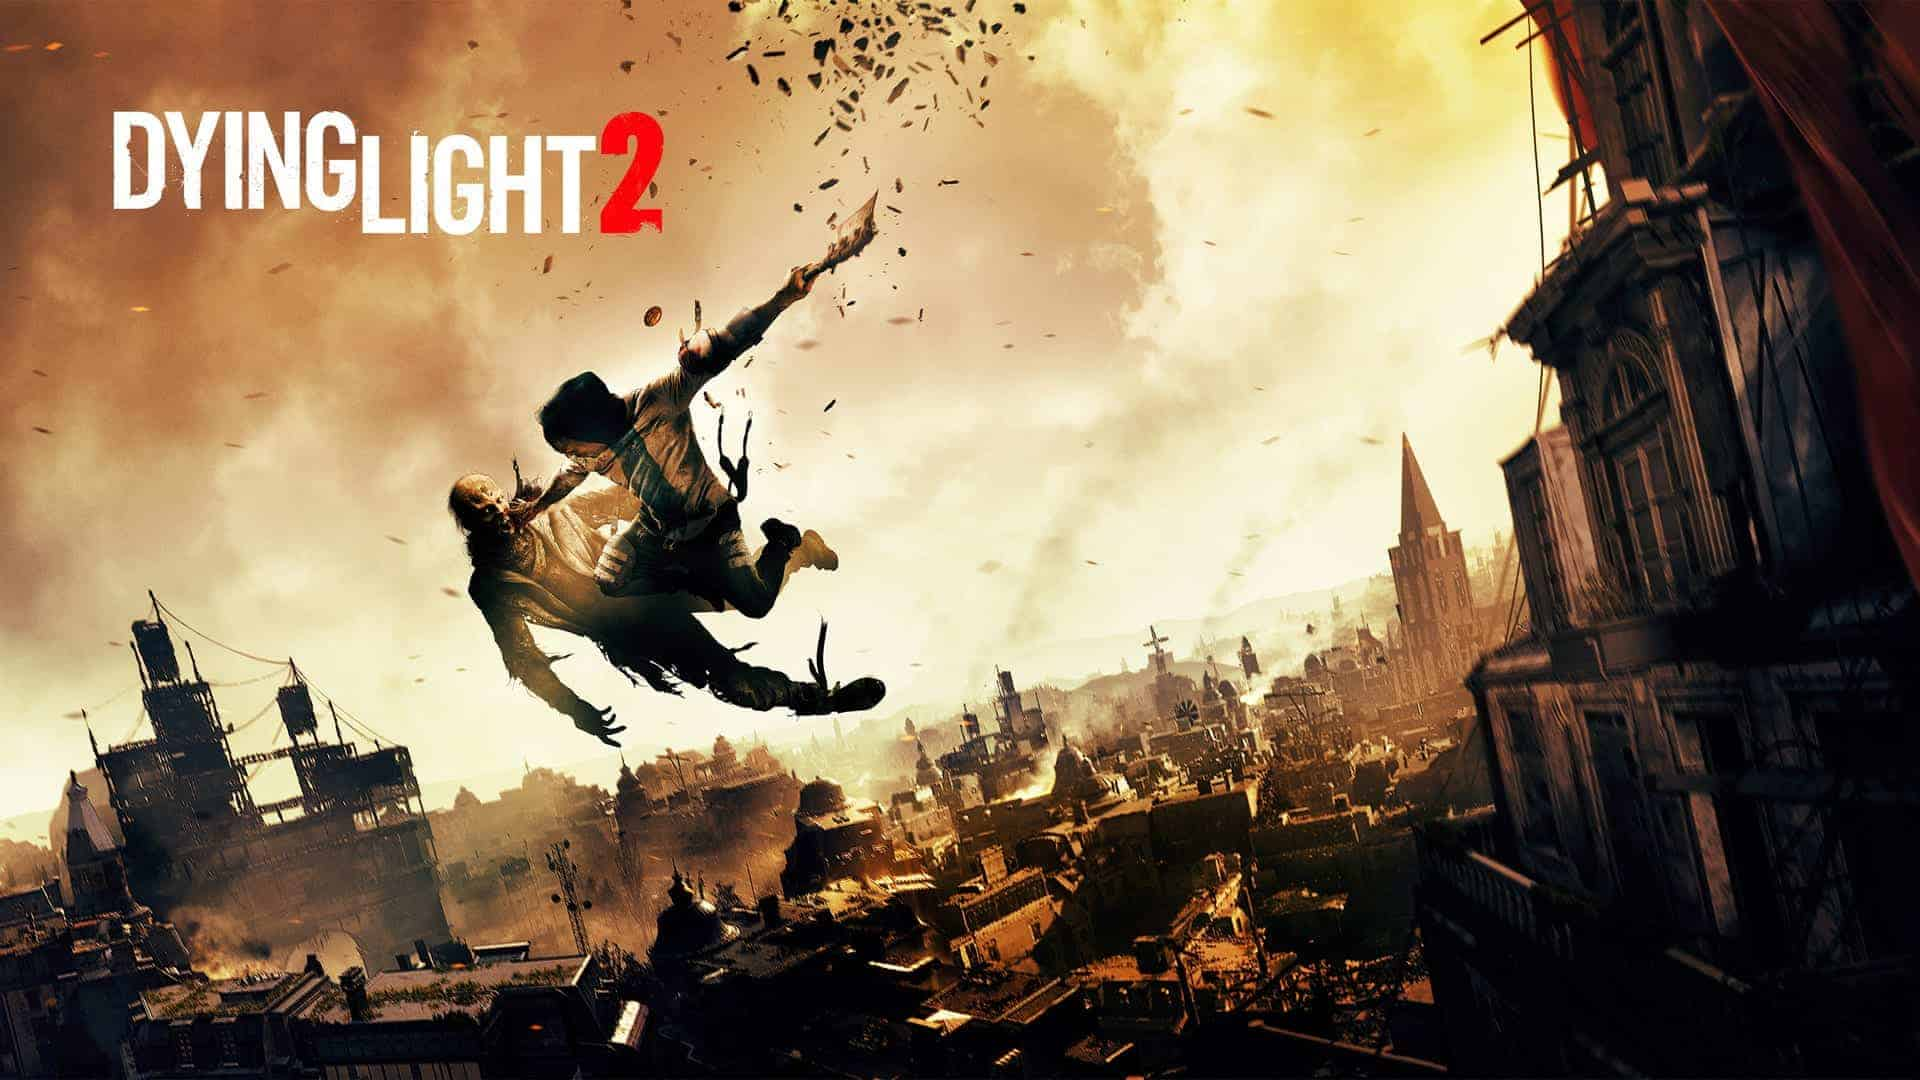 Dying Light 2 Game Information